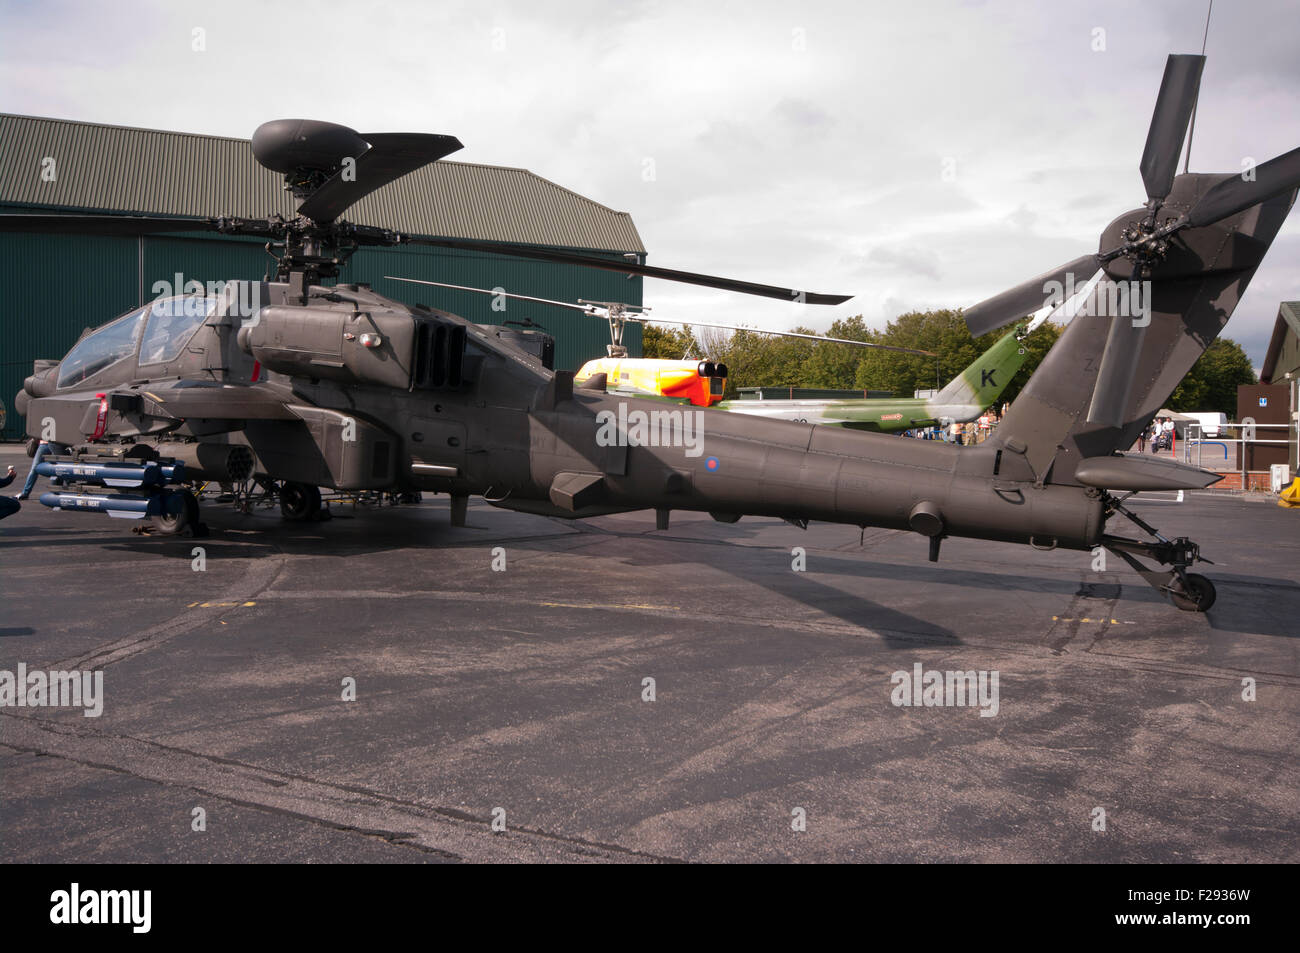 Side view Of A British Army Boeing AH-64 Apache Helicopter - Stock Image